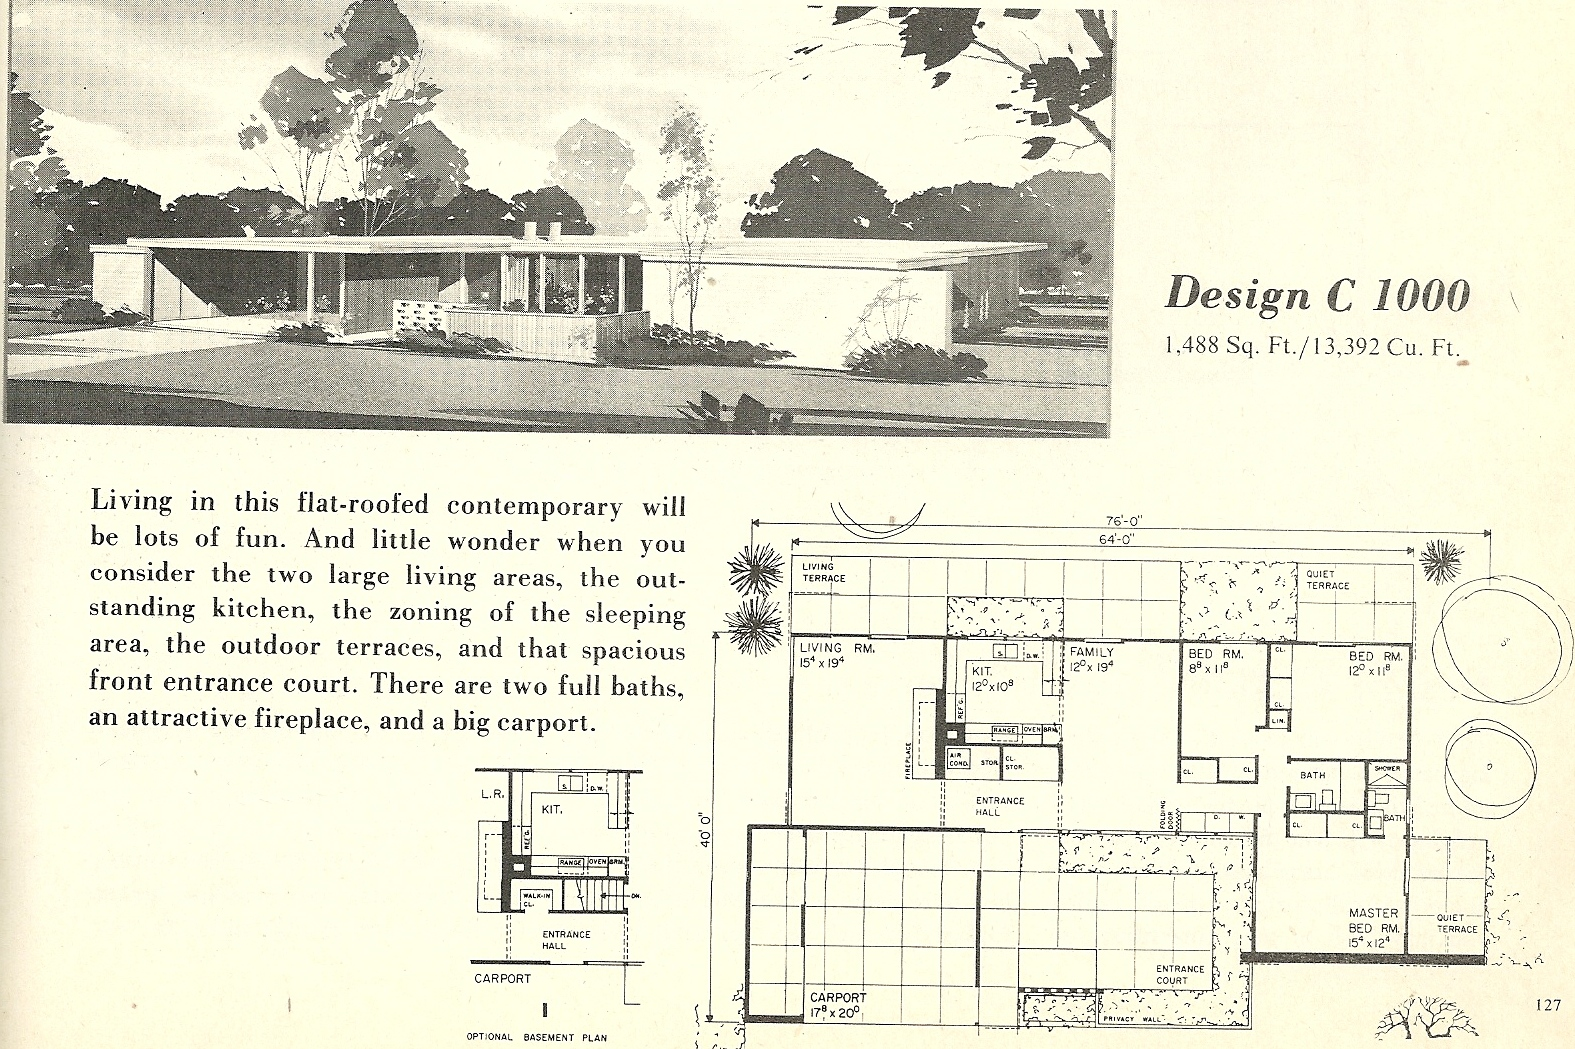 Vintage house plans 1000 antique alter ego for New old home plans